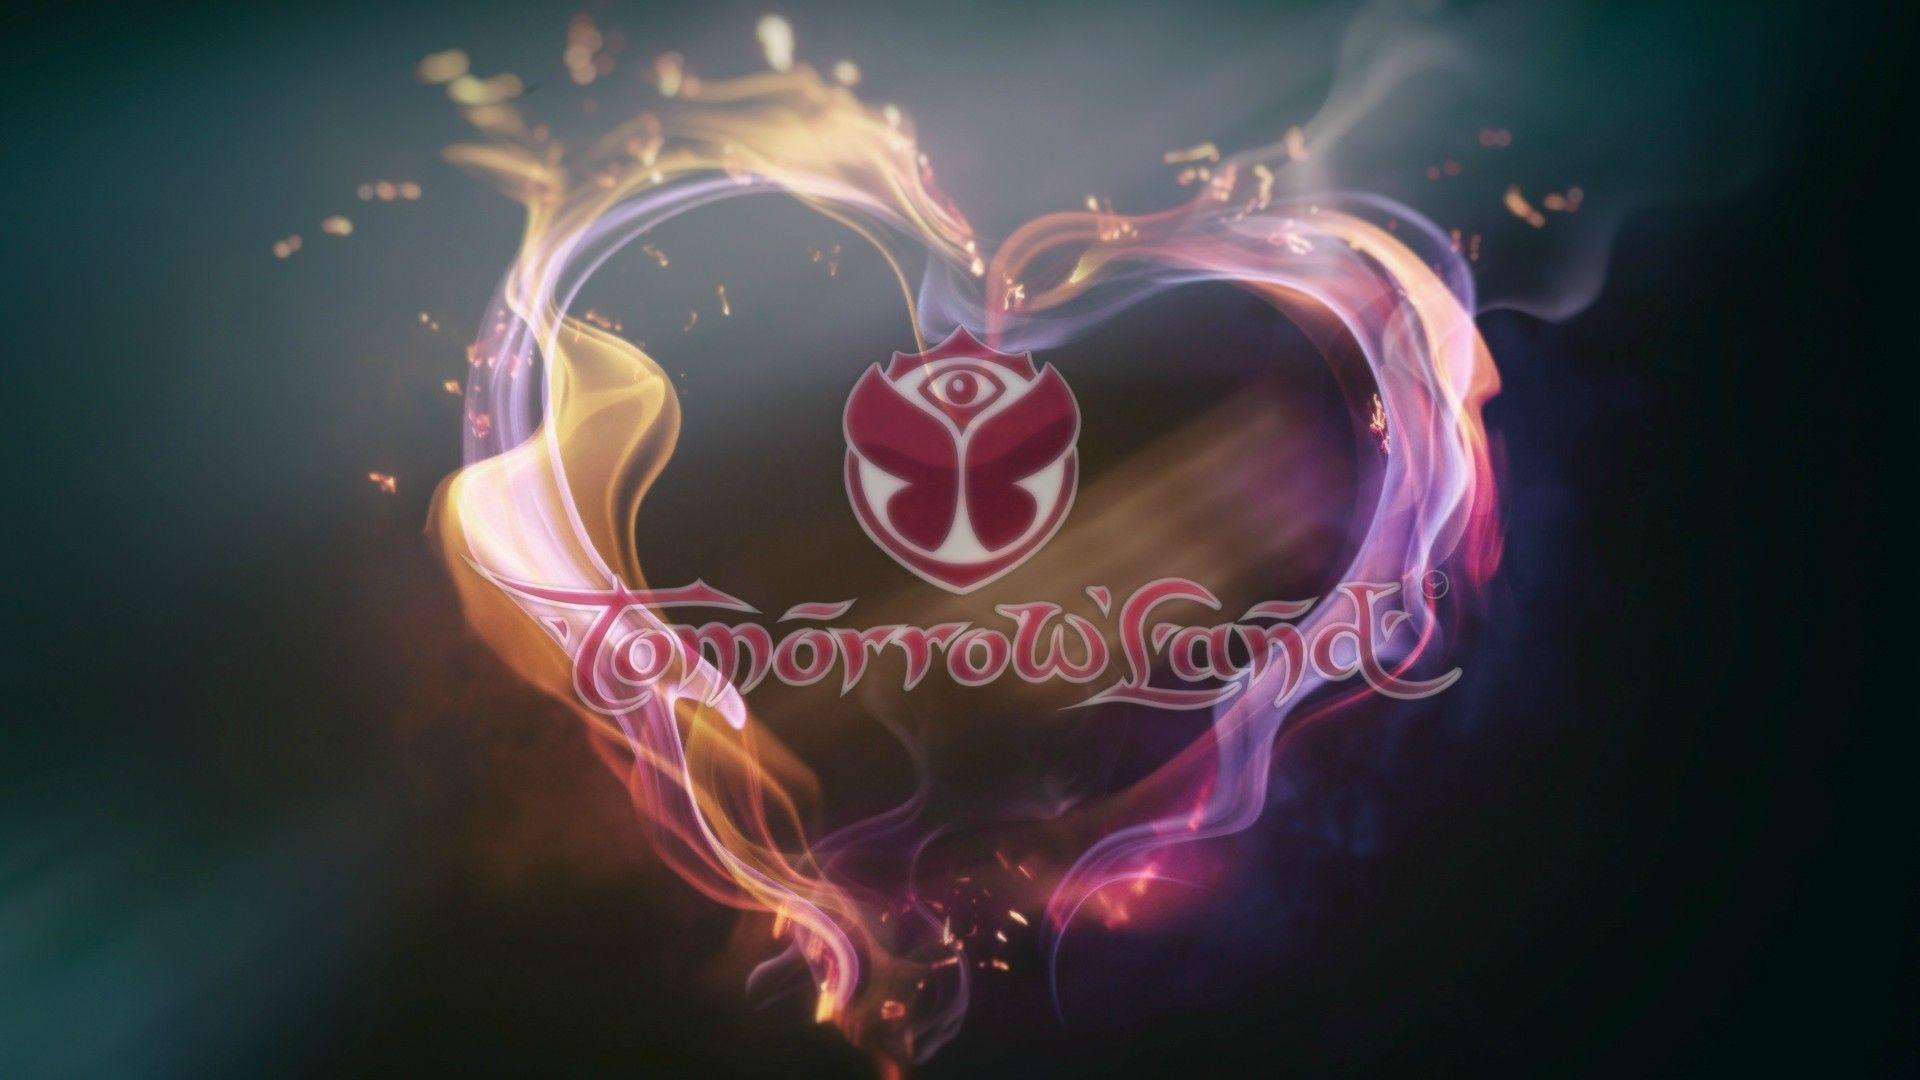 Tomorrowland Logo Wallpapers - Wallpaper Cave